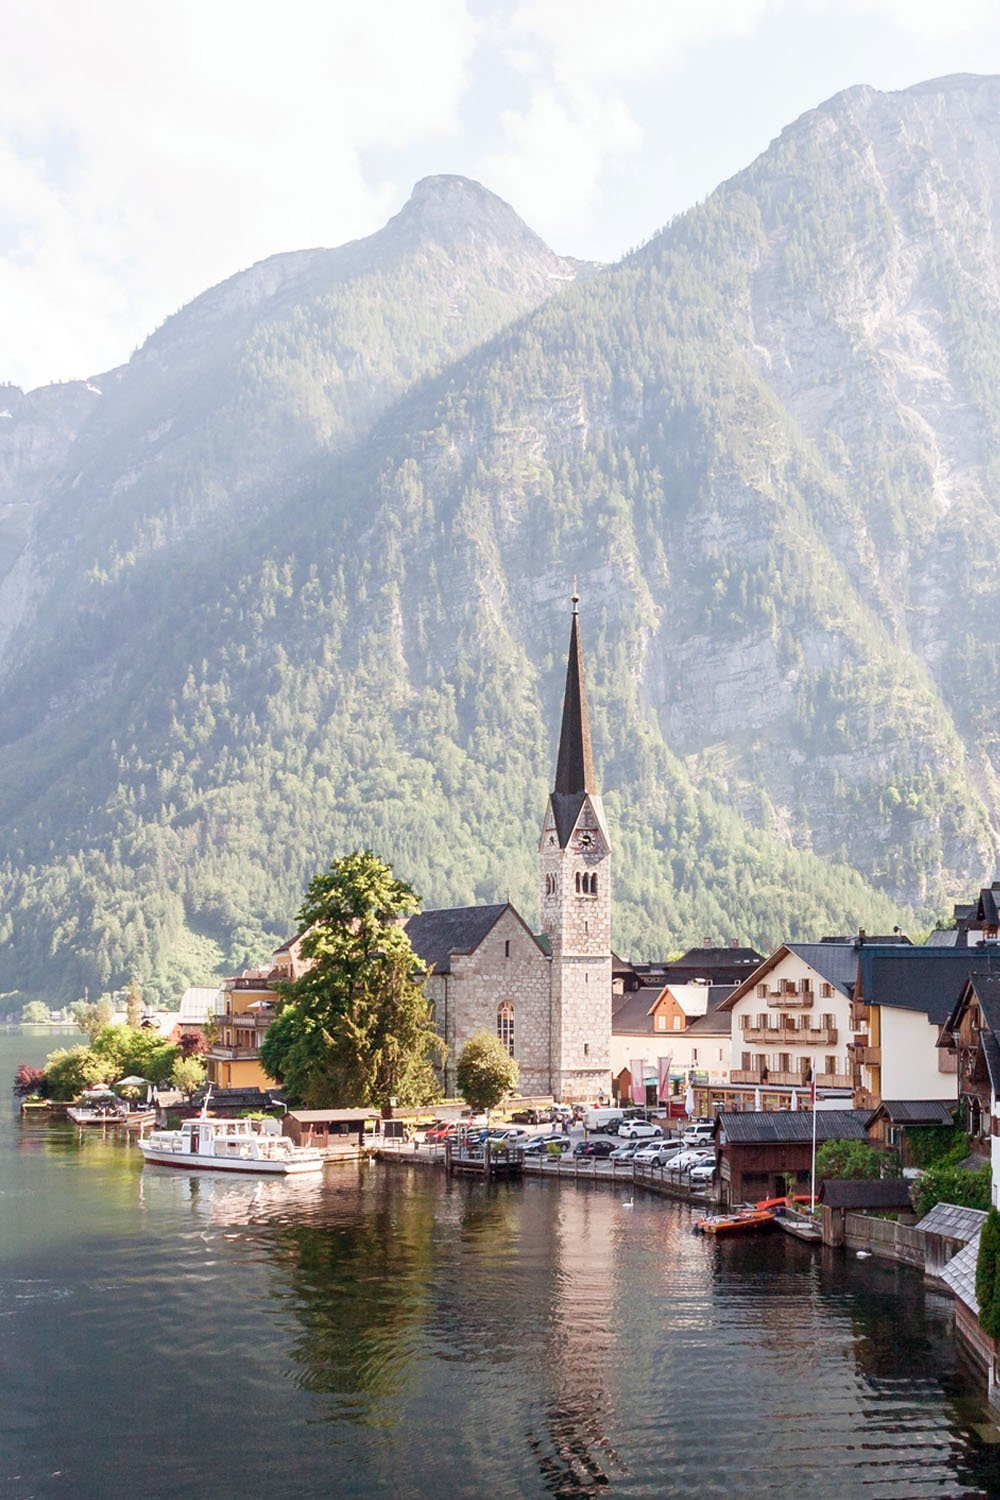 A calm blue lake mirroring the sky, mountain ranges setting a picture-perfect background, and pastel lakeside houses lending the historic town a storybook vibe - that's what to expect in Hallstatt, Austria! Here's a travel guide to Austria's most photogenic town.